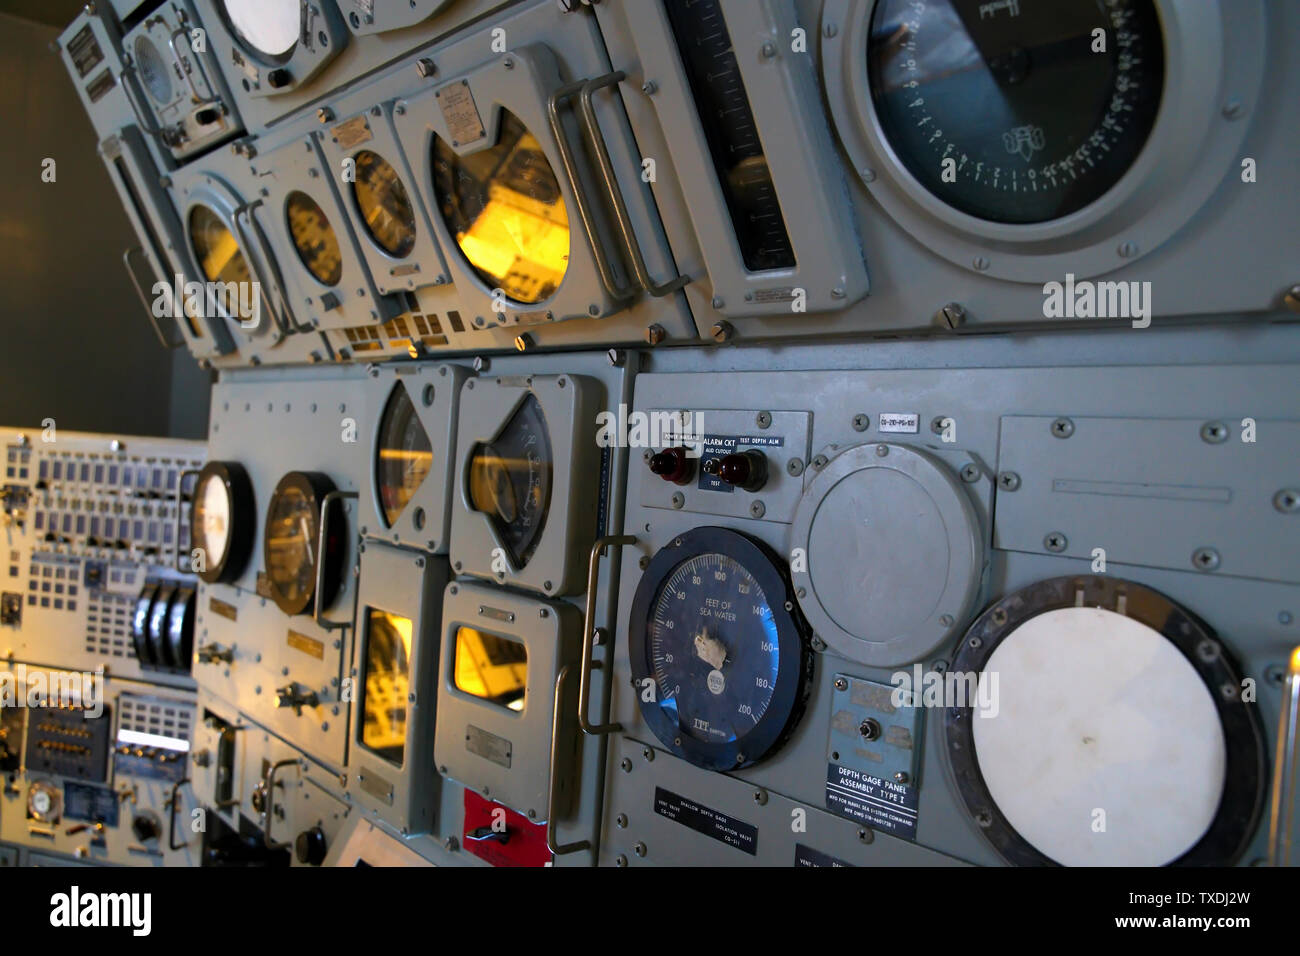 Submarine Force Museum, Groton CT USA, Jun 2019. Control Station of a nuclear powered ballistic missile submarine. - Stock Image